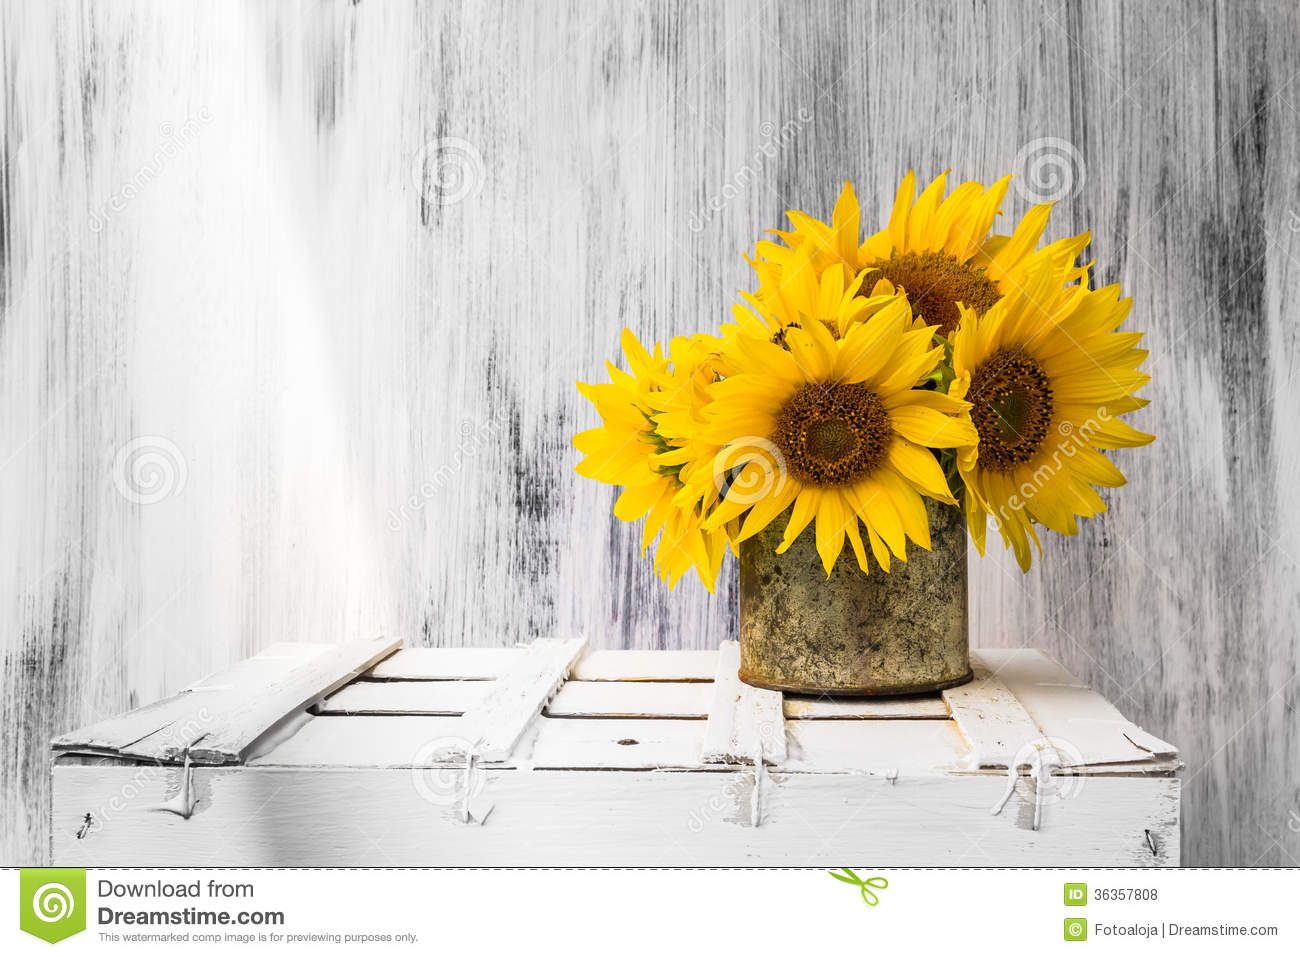 Background Still Life Flower Sunflower Wooden White Vintage Stock Photo 36357808